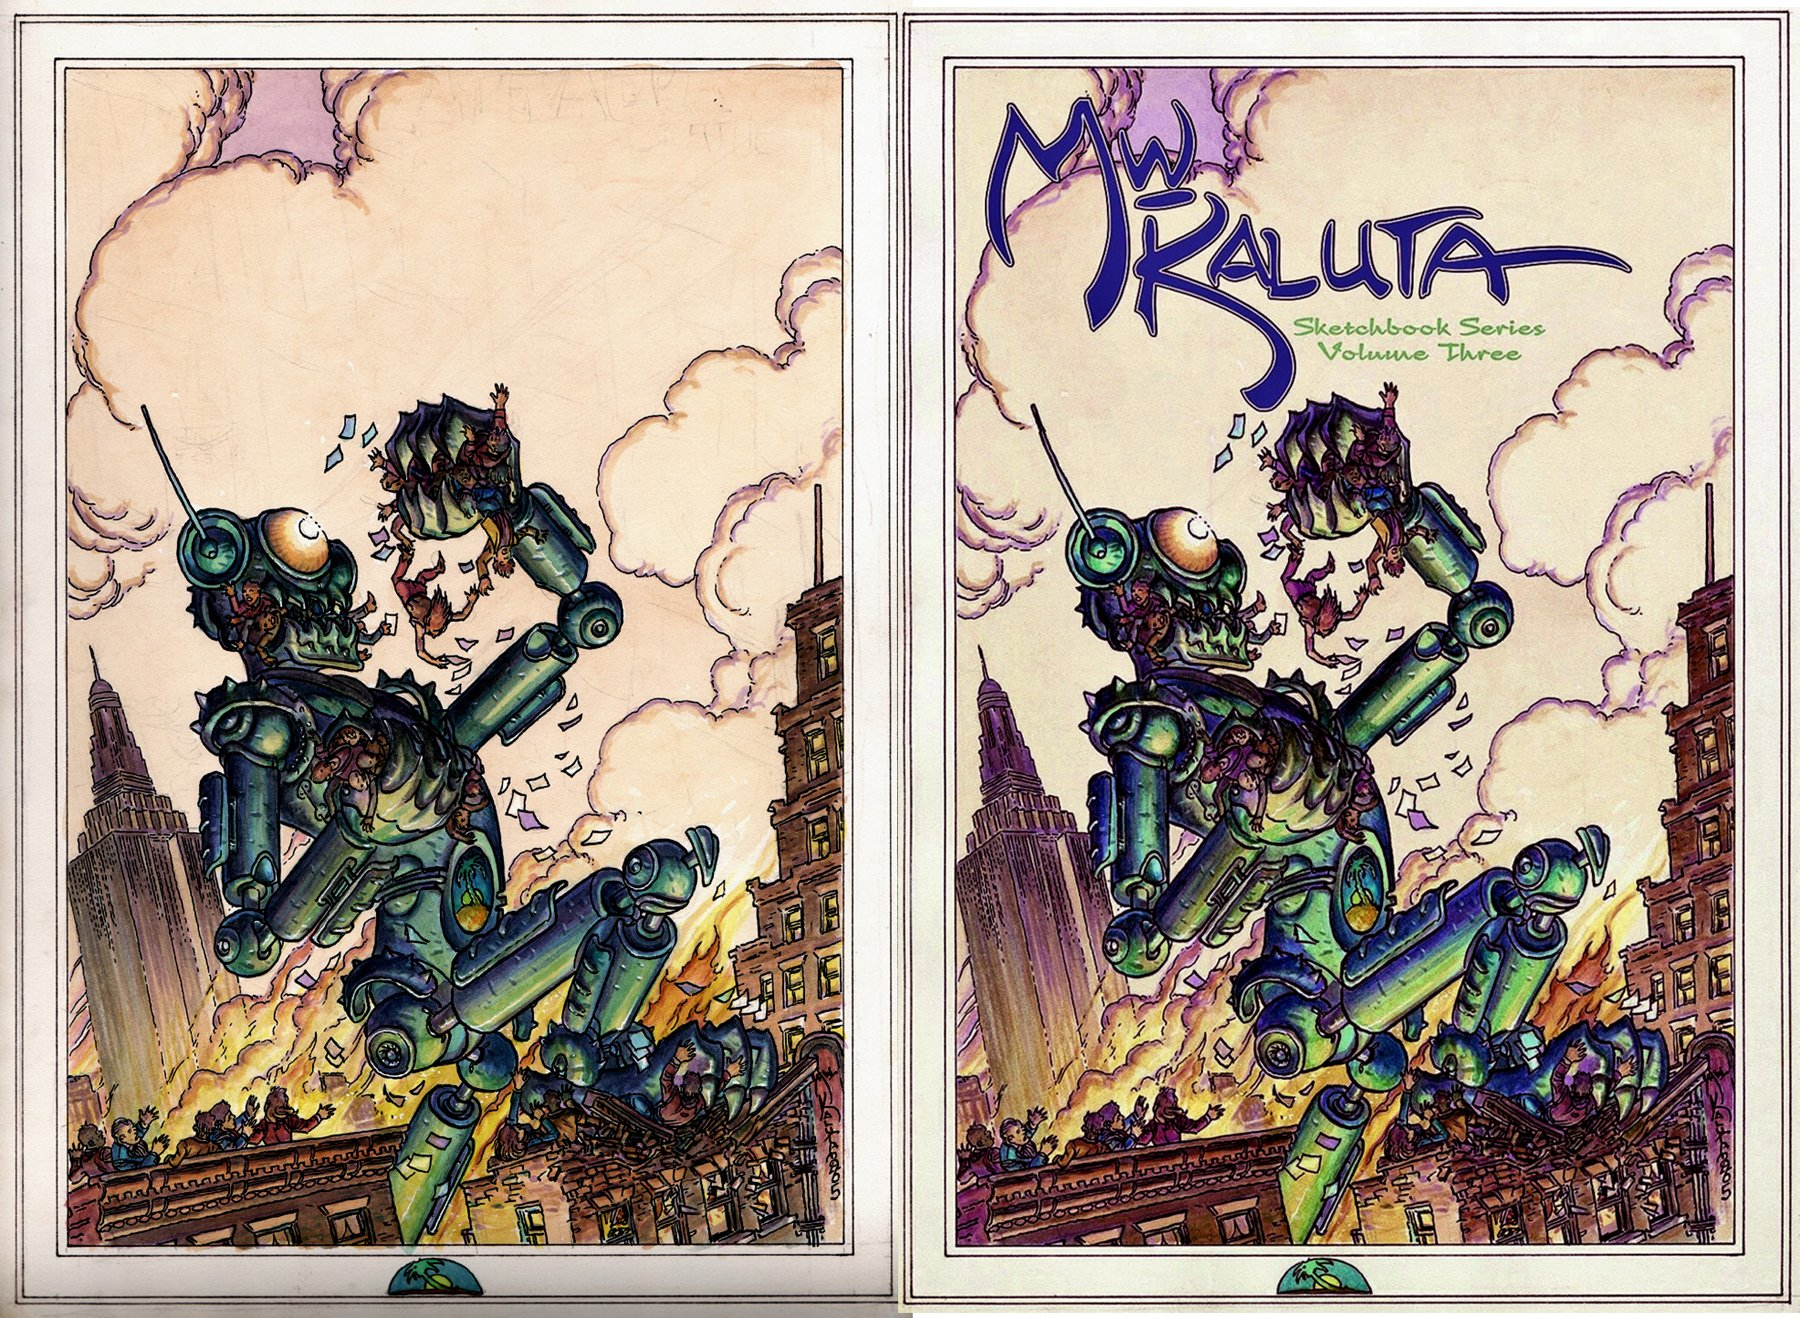 Michael Kaluta 'Robot Rampage' Published Cover (2005)